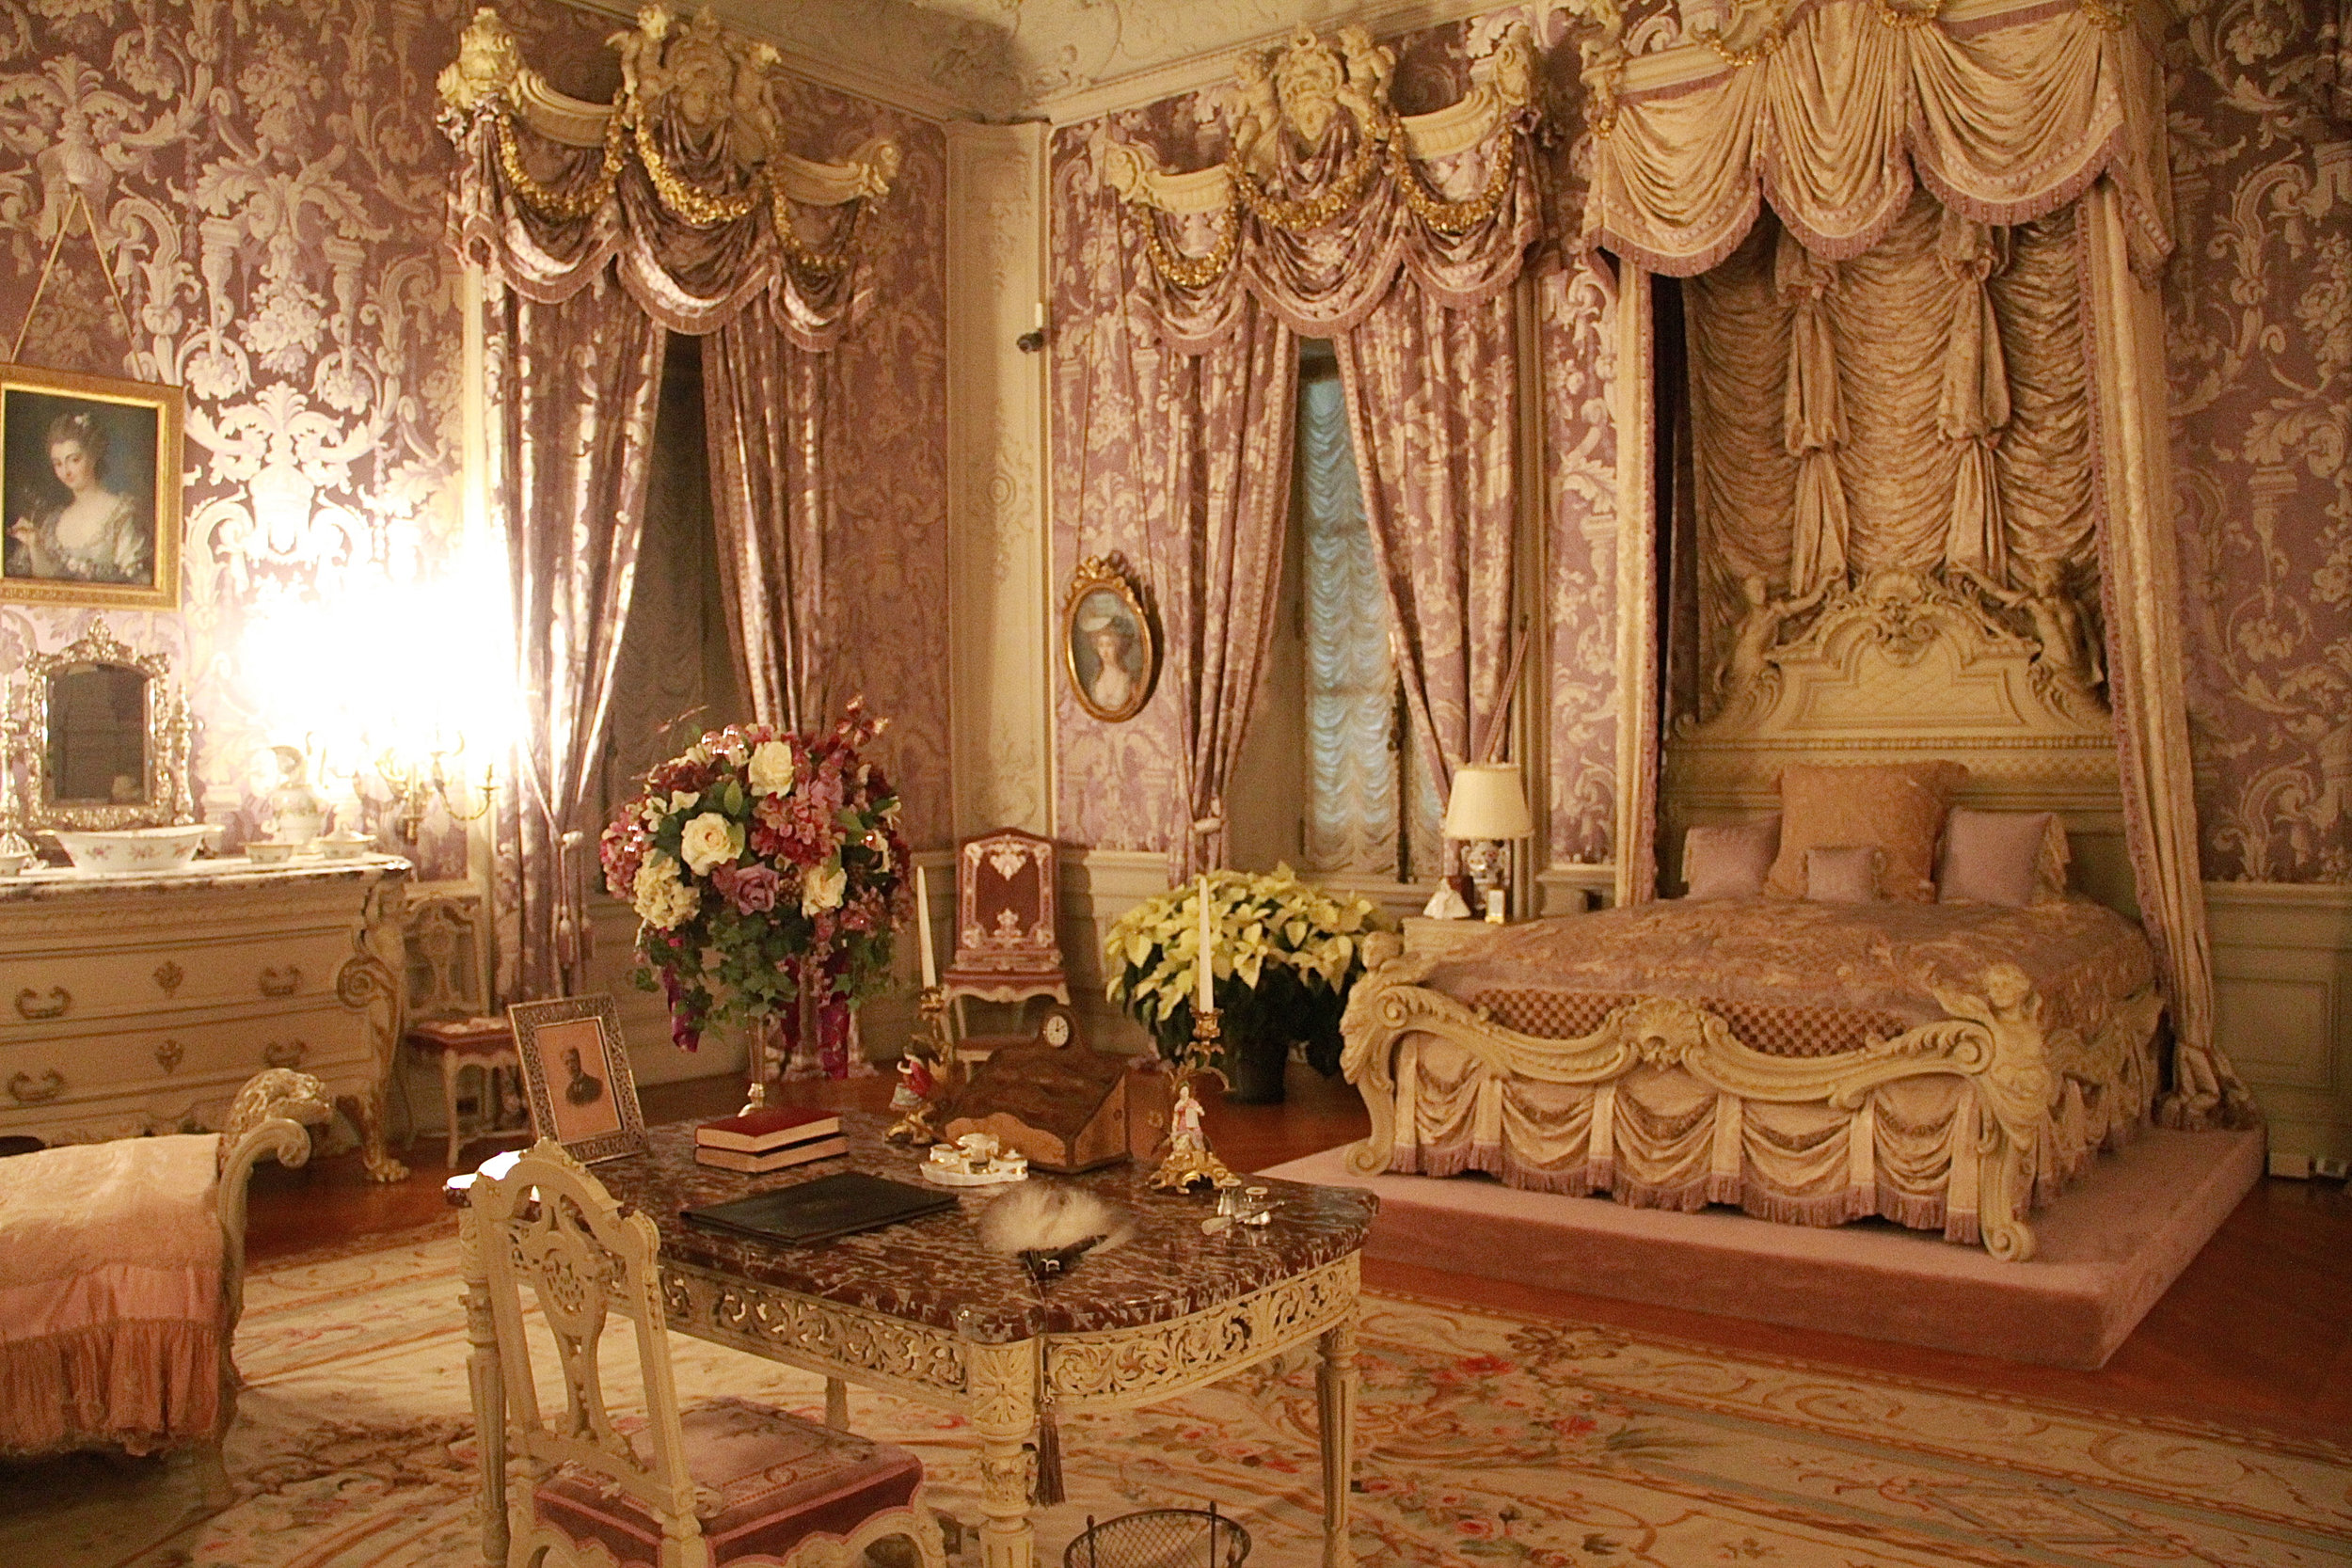 newport-marble-house-pink-bedroom.jpg